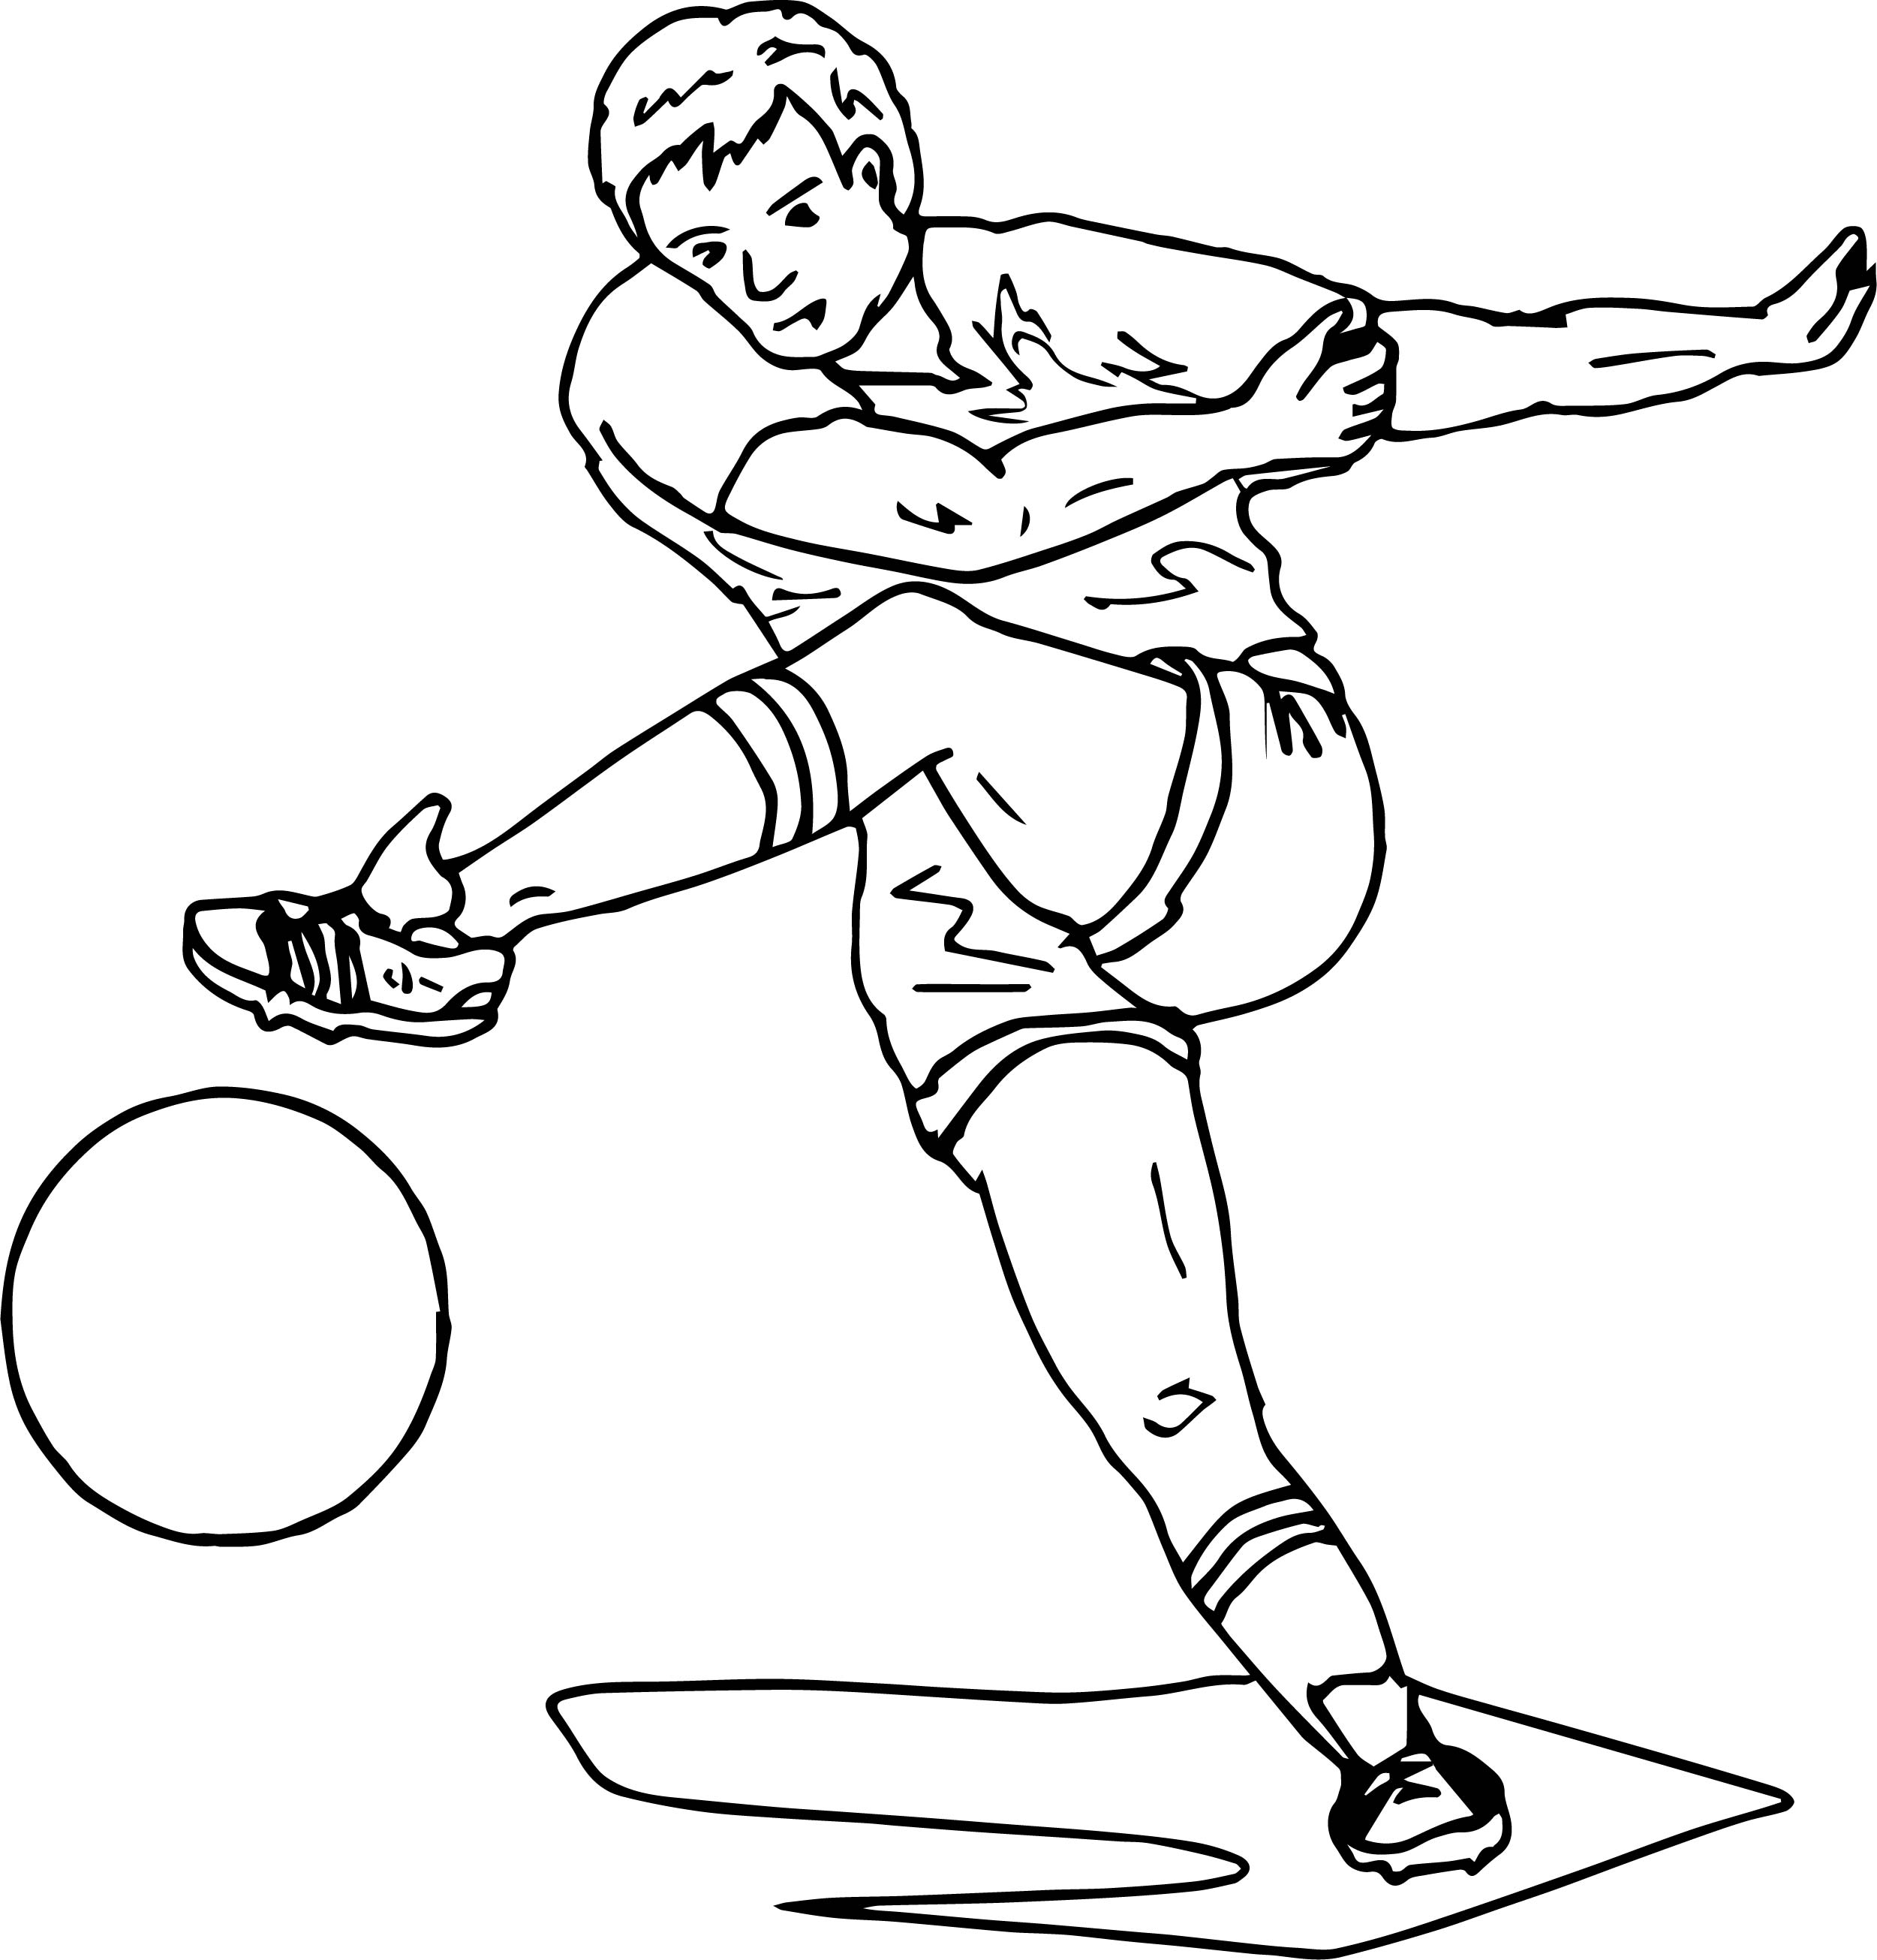 football pictures to color 35 free printable football or soccer coloring pages to color football pictures